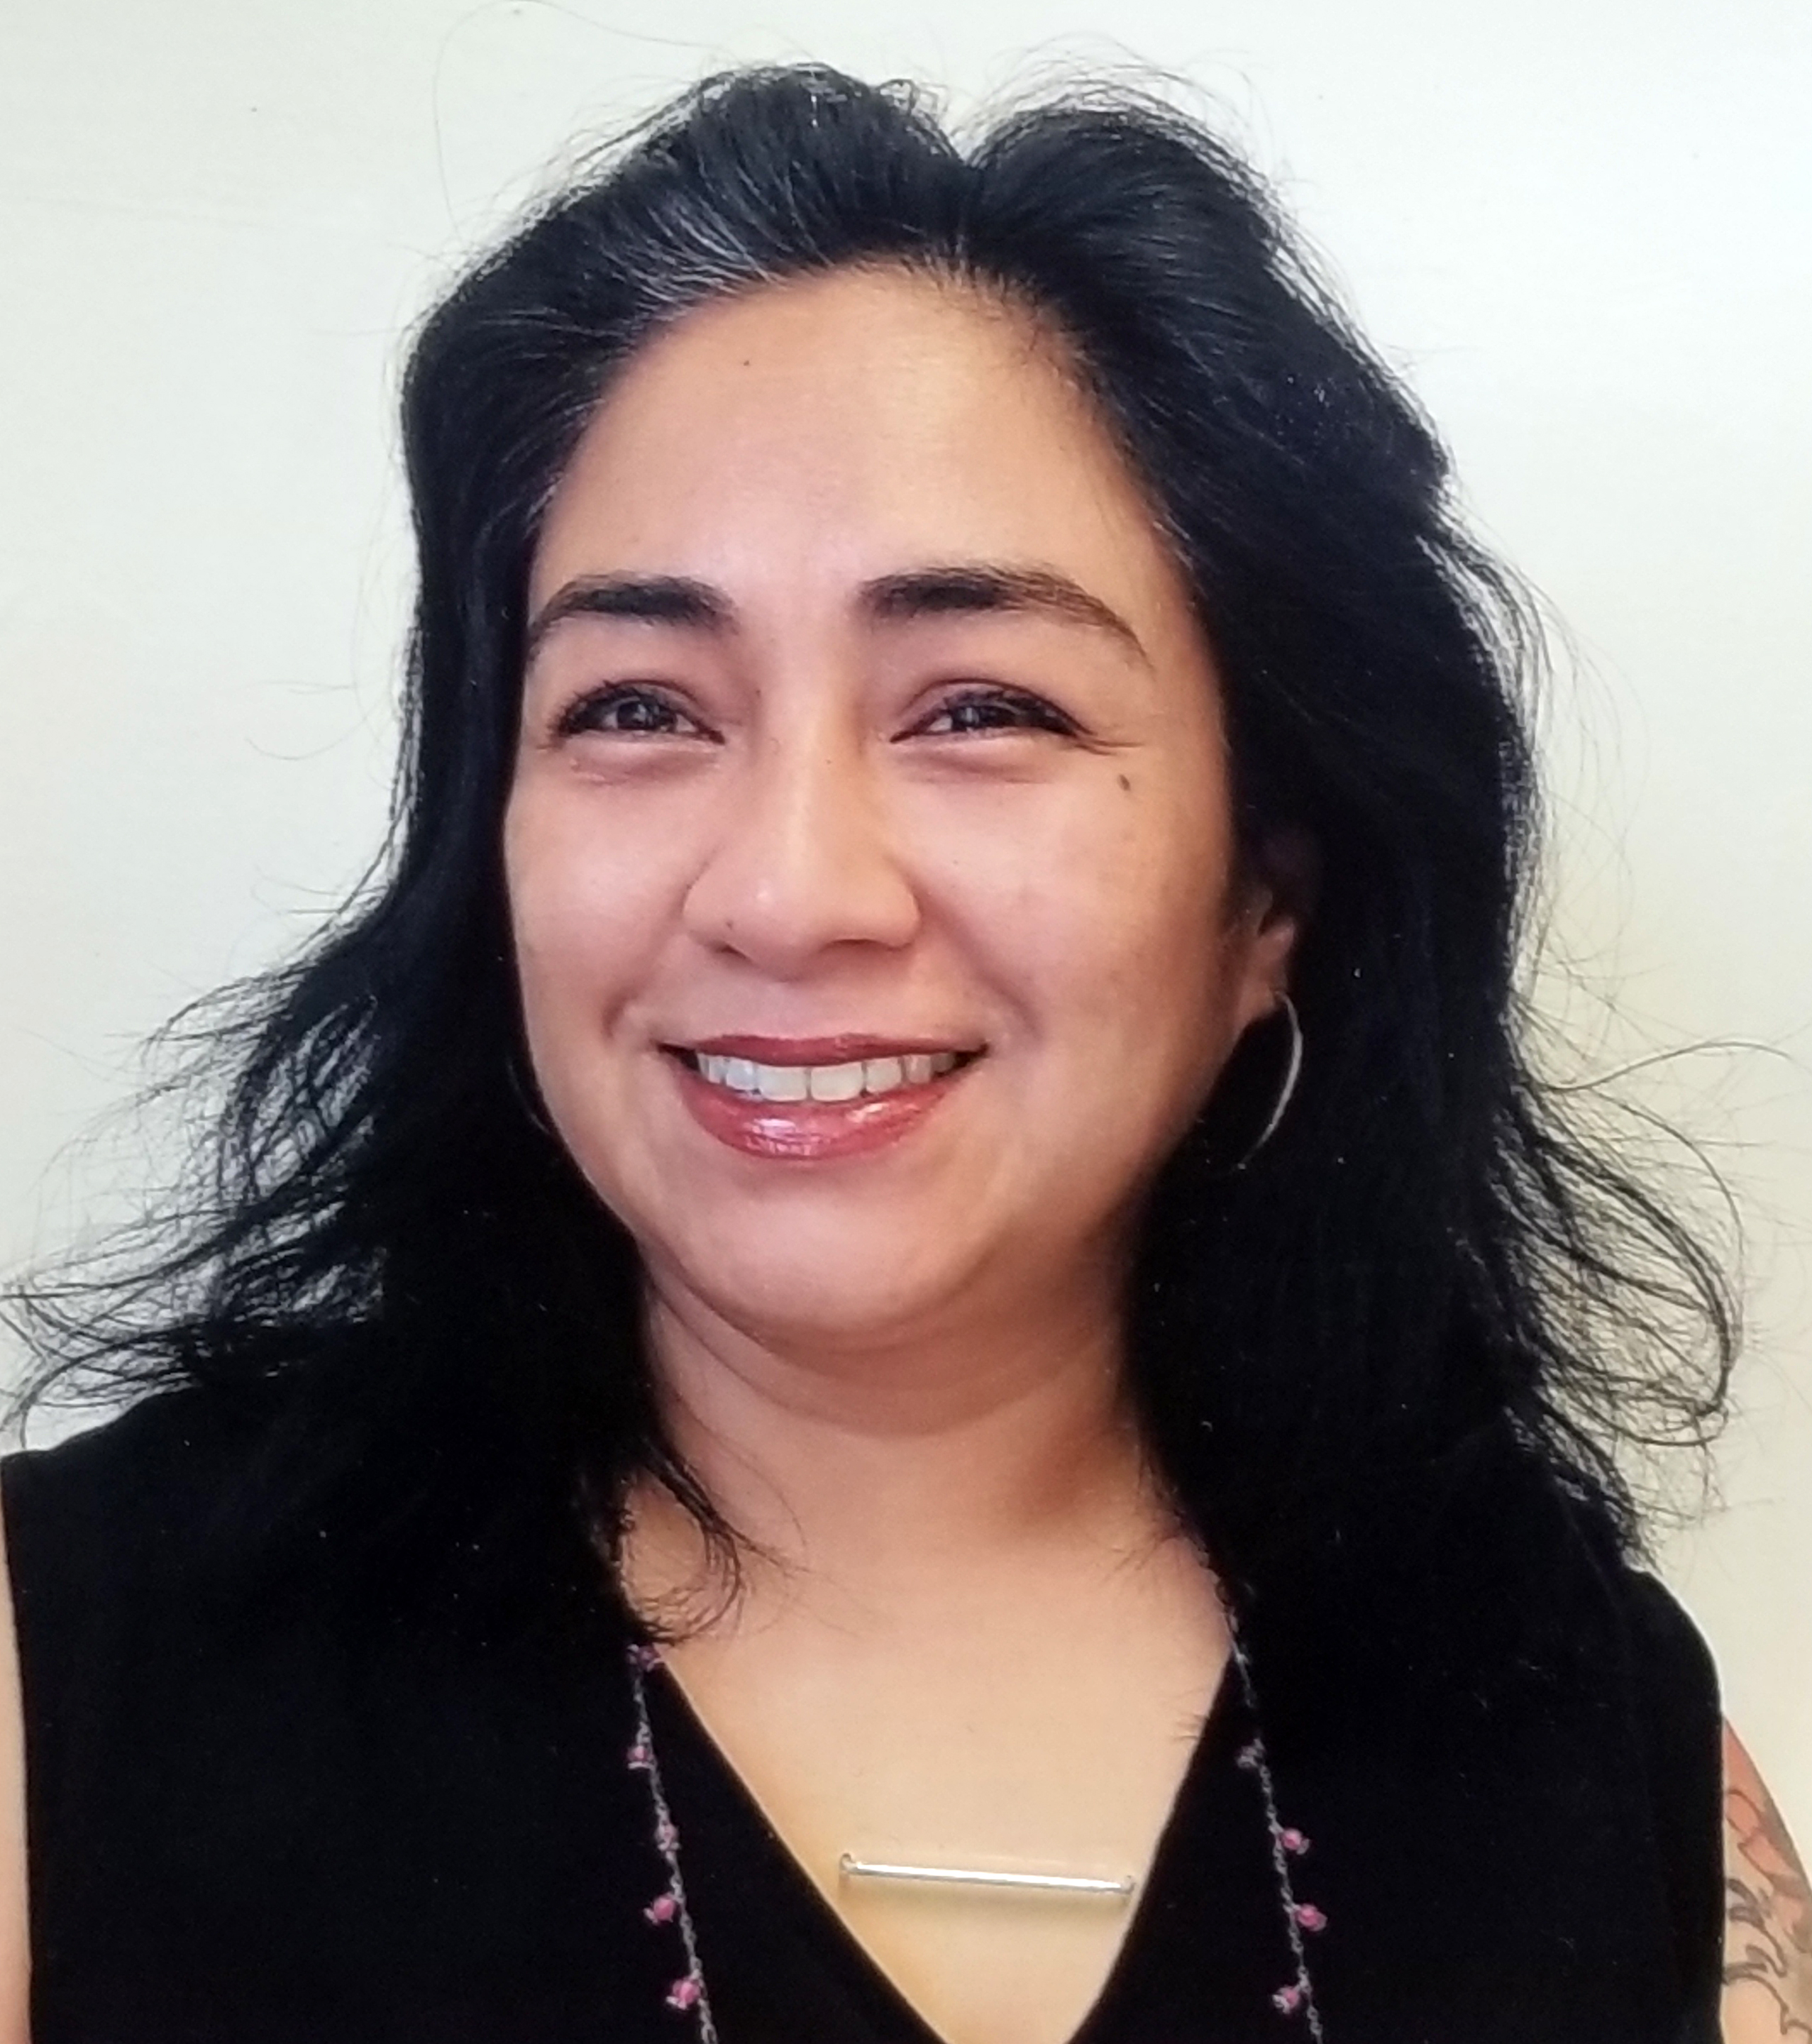 Photo of Ms. Reyes our Community Associate.